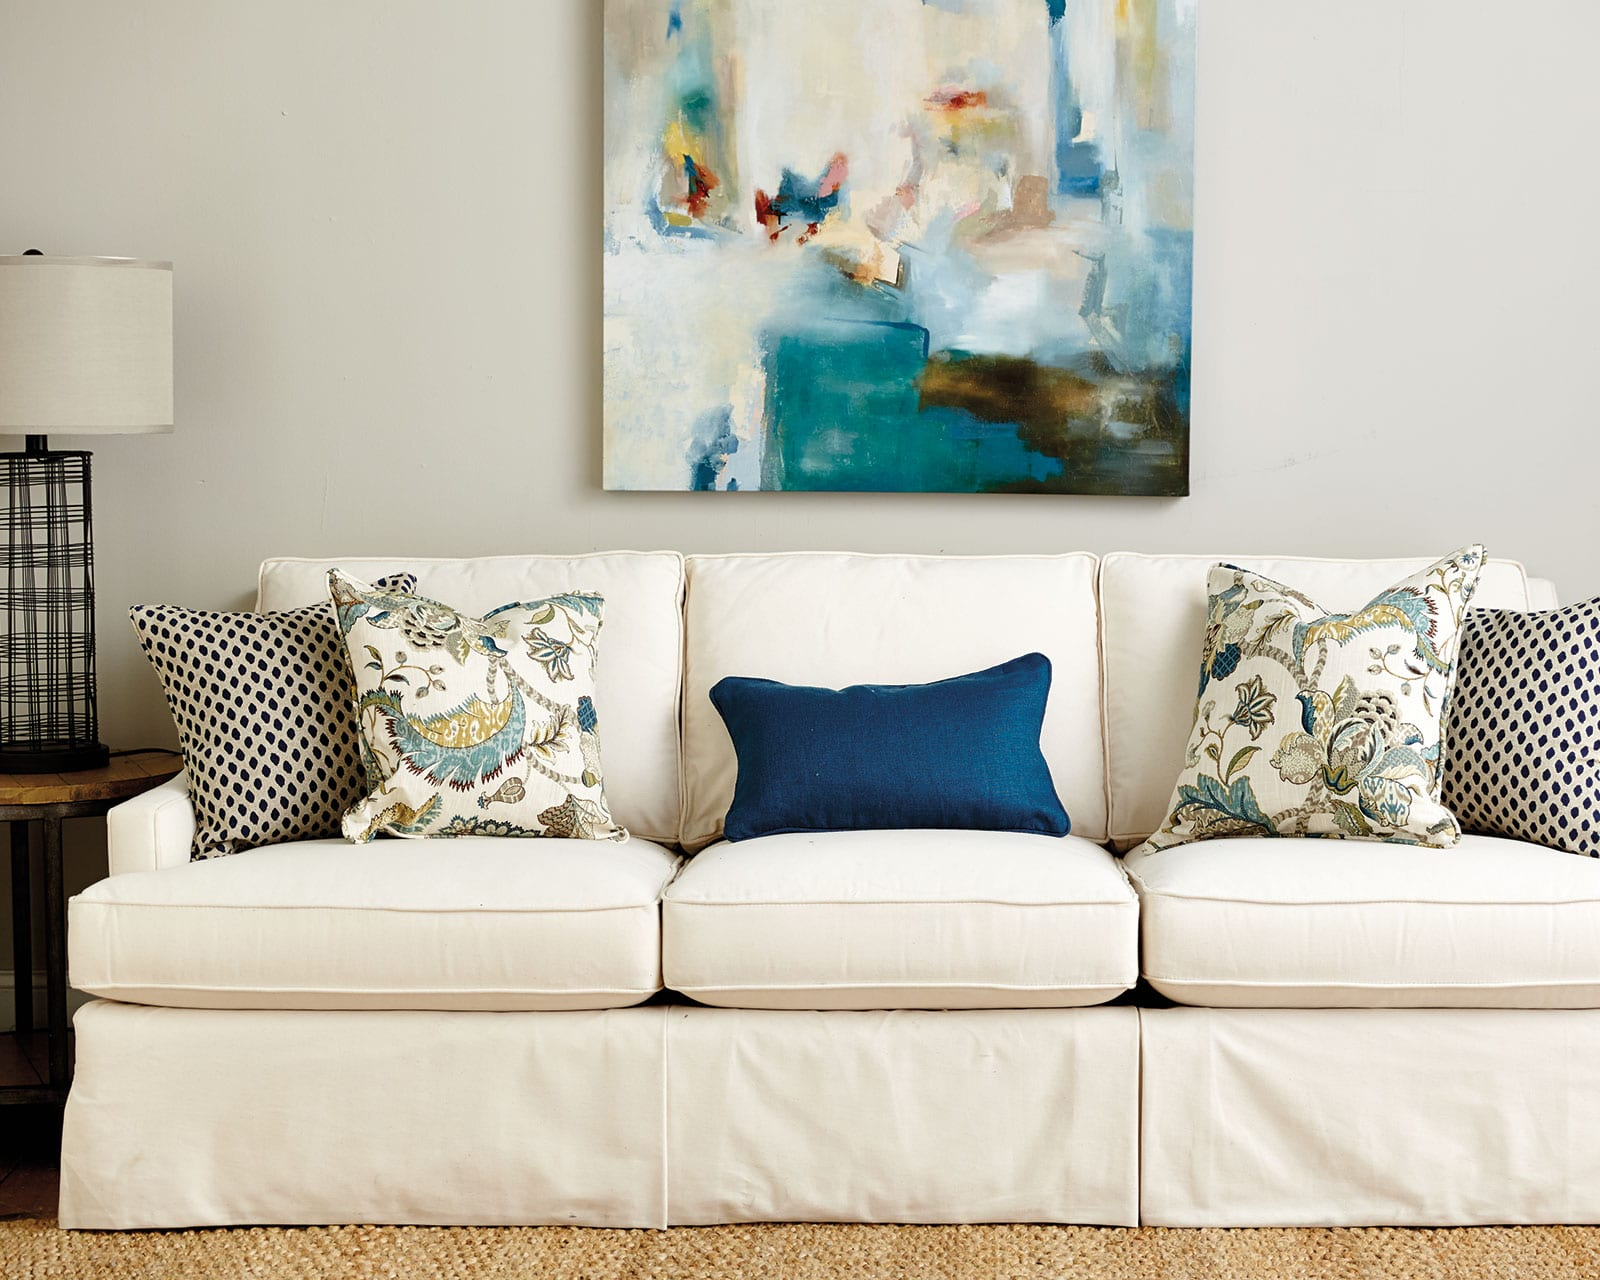 Sofa Cushions That Don't Go Flat Guide To Choosing Throw Pillows How To Decorate